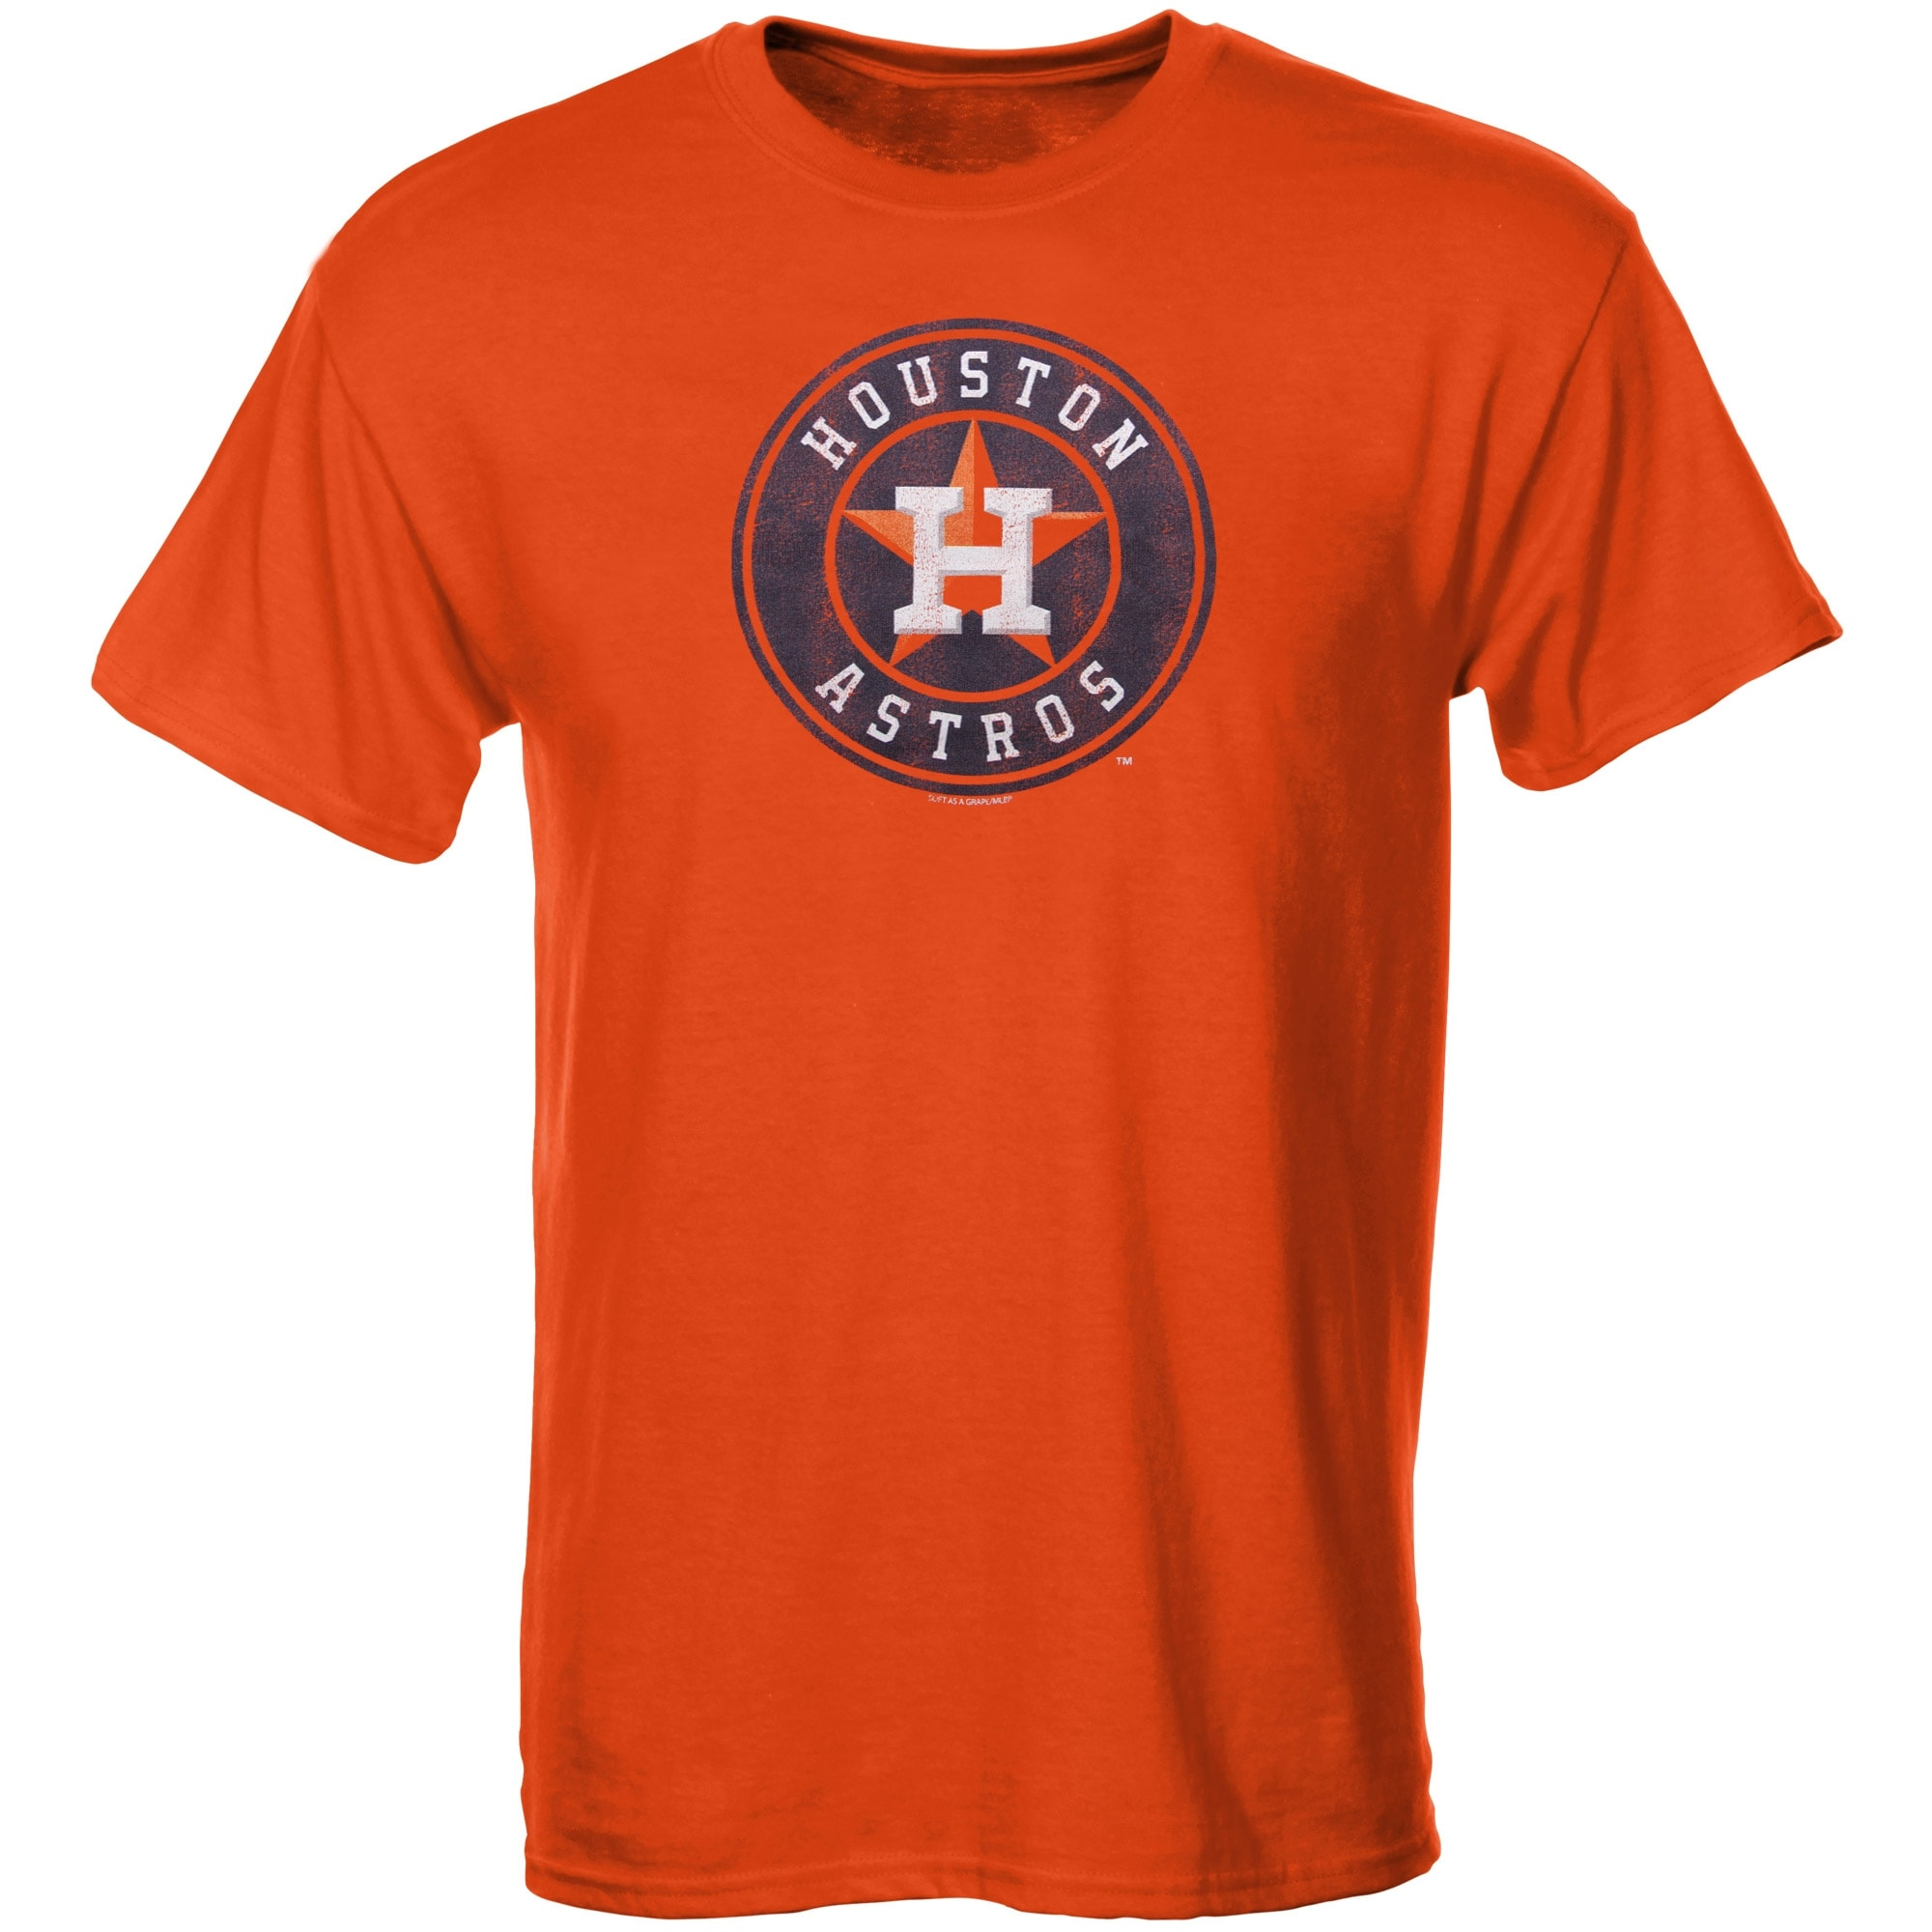 Houston Astros Youth Distressed Logo T-Shirt - Orange